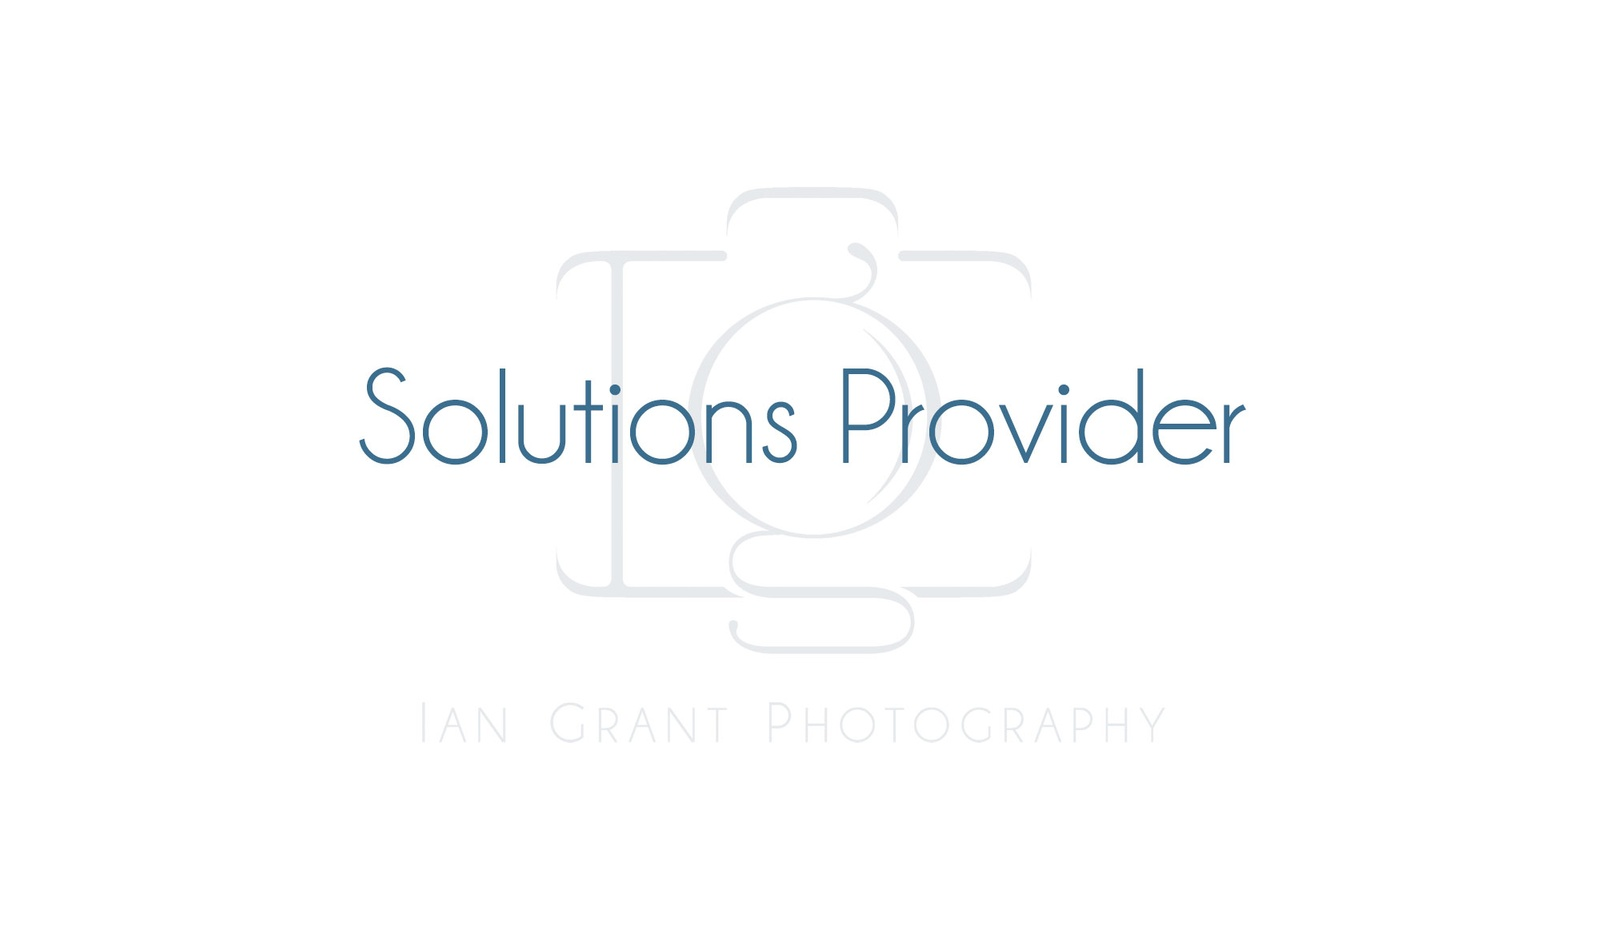 Commercial Photography Solutions Provider Toronto - Ian Grant